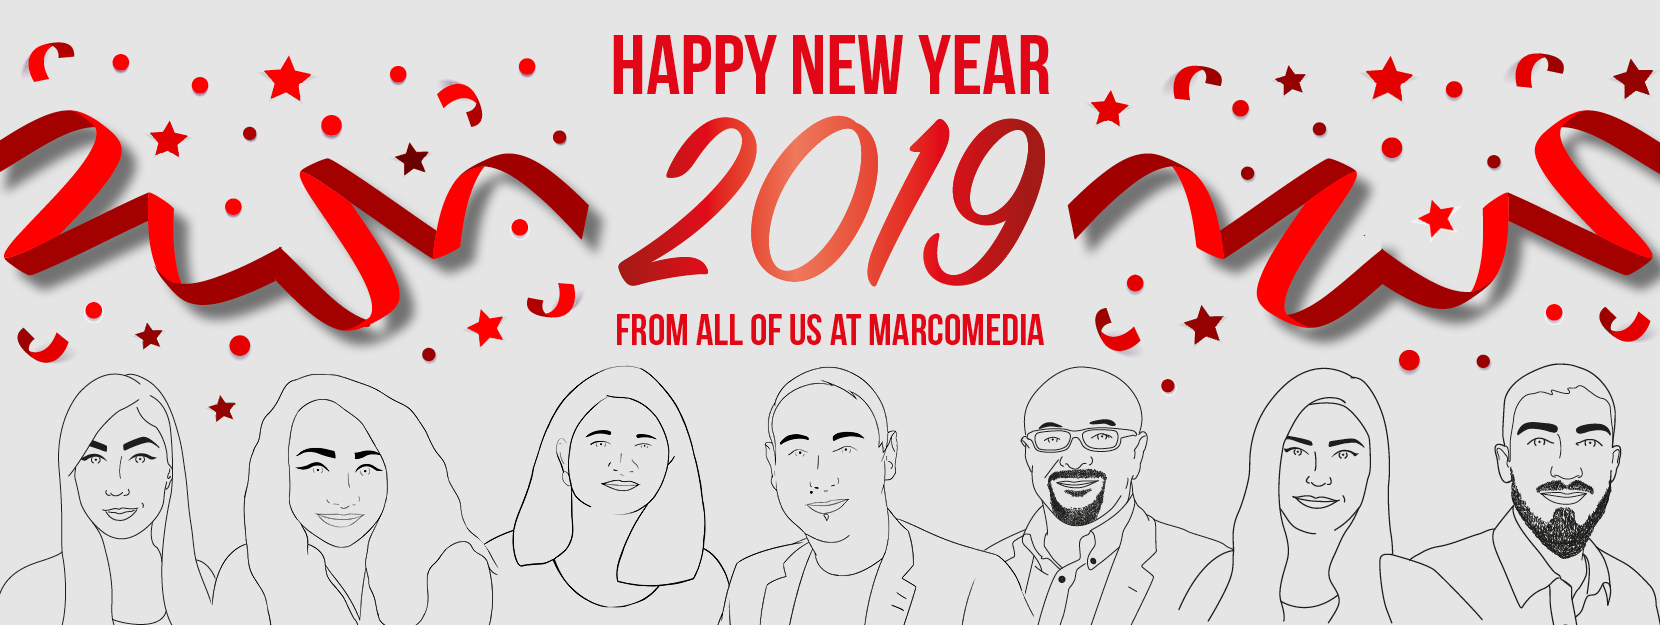 Happy New Year from all of us at Marcomedia